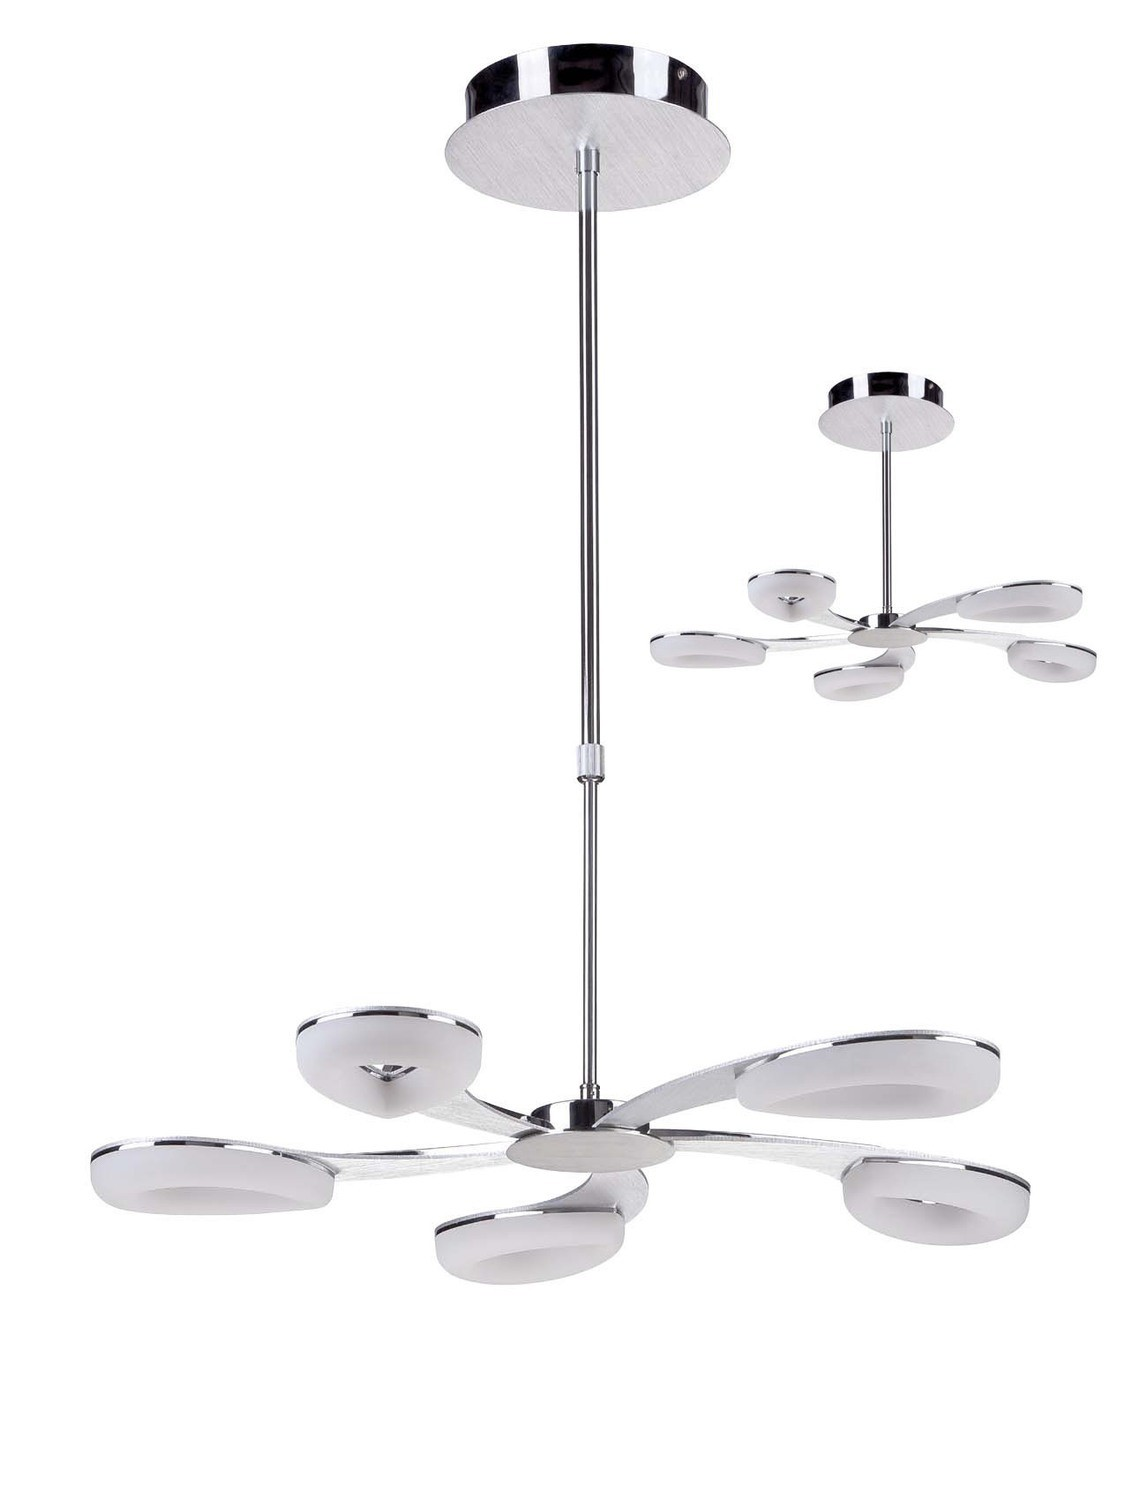 Juno Telescopic 5 Light 30W LED 3000K, 2700lm, Satin Aluminium/Frosted Acrylic/Polished Chrome